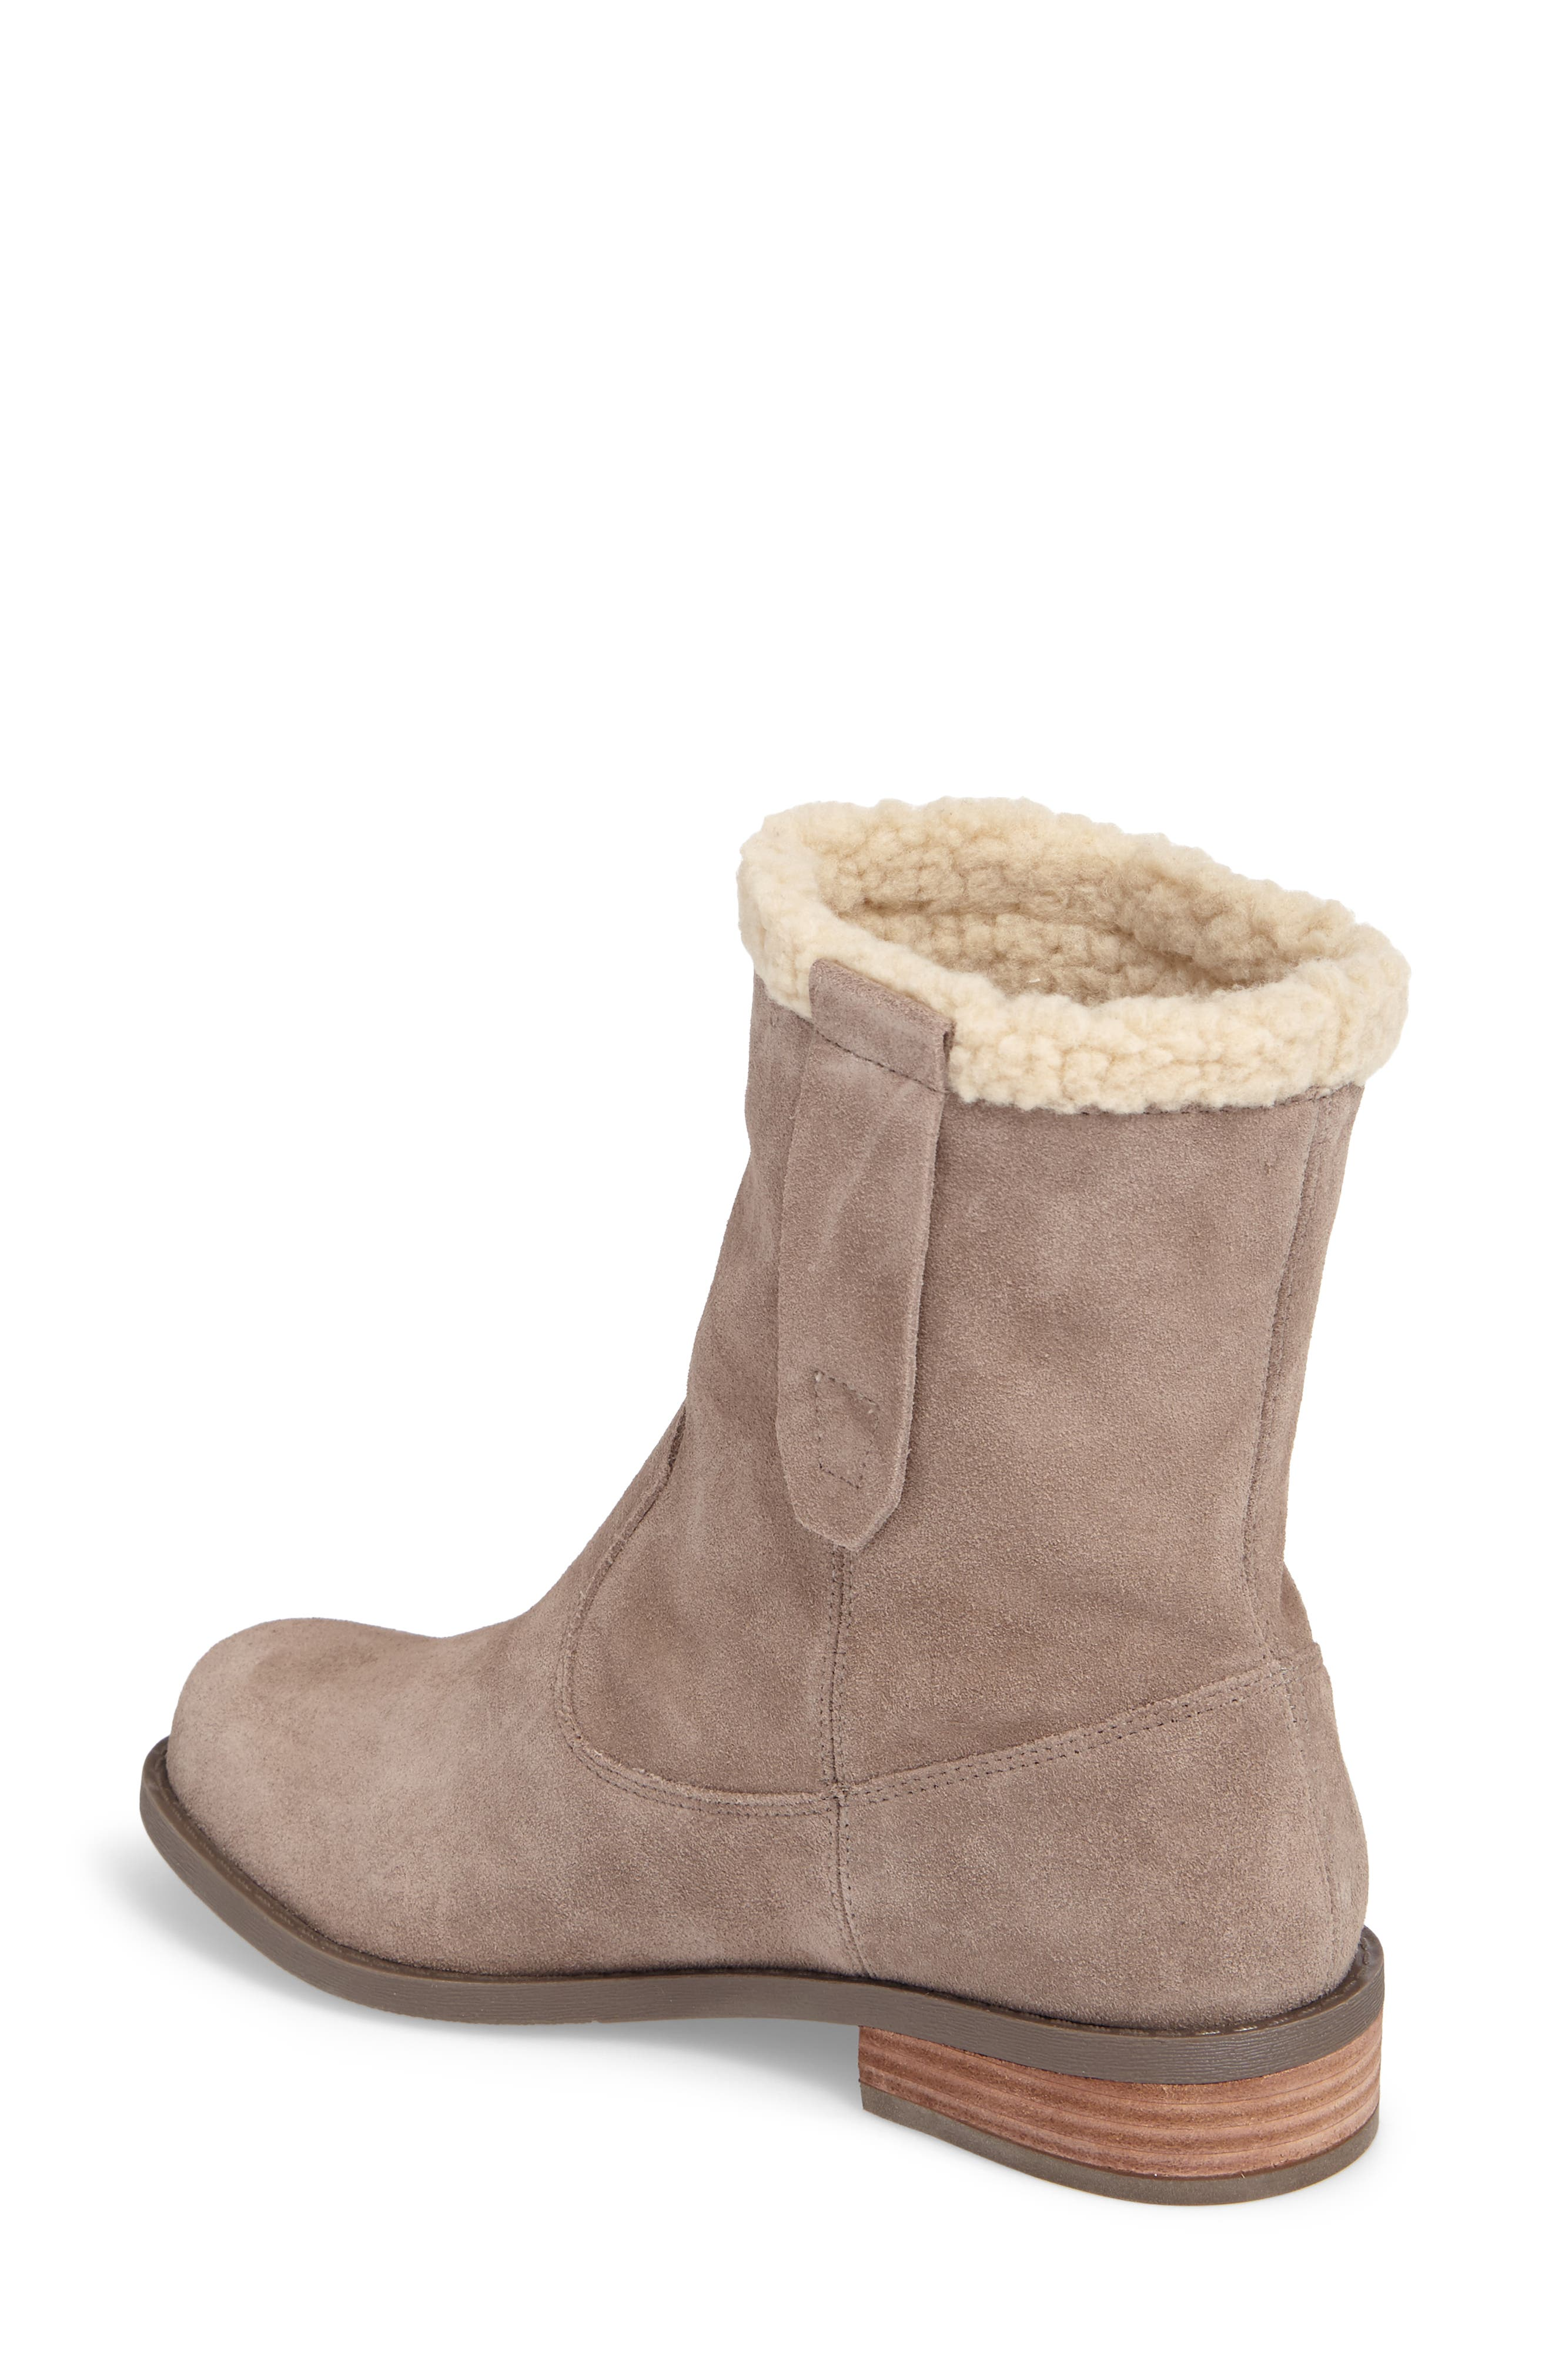 SOLE SOCIETY, Verona Faux Shearling Boot, Alternate thumbnail 2, color, DARK MUSHROOM SUEDE